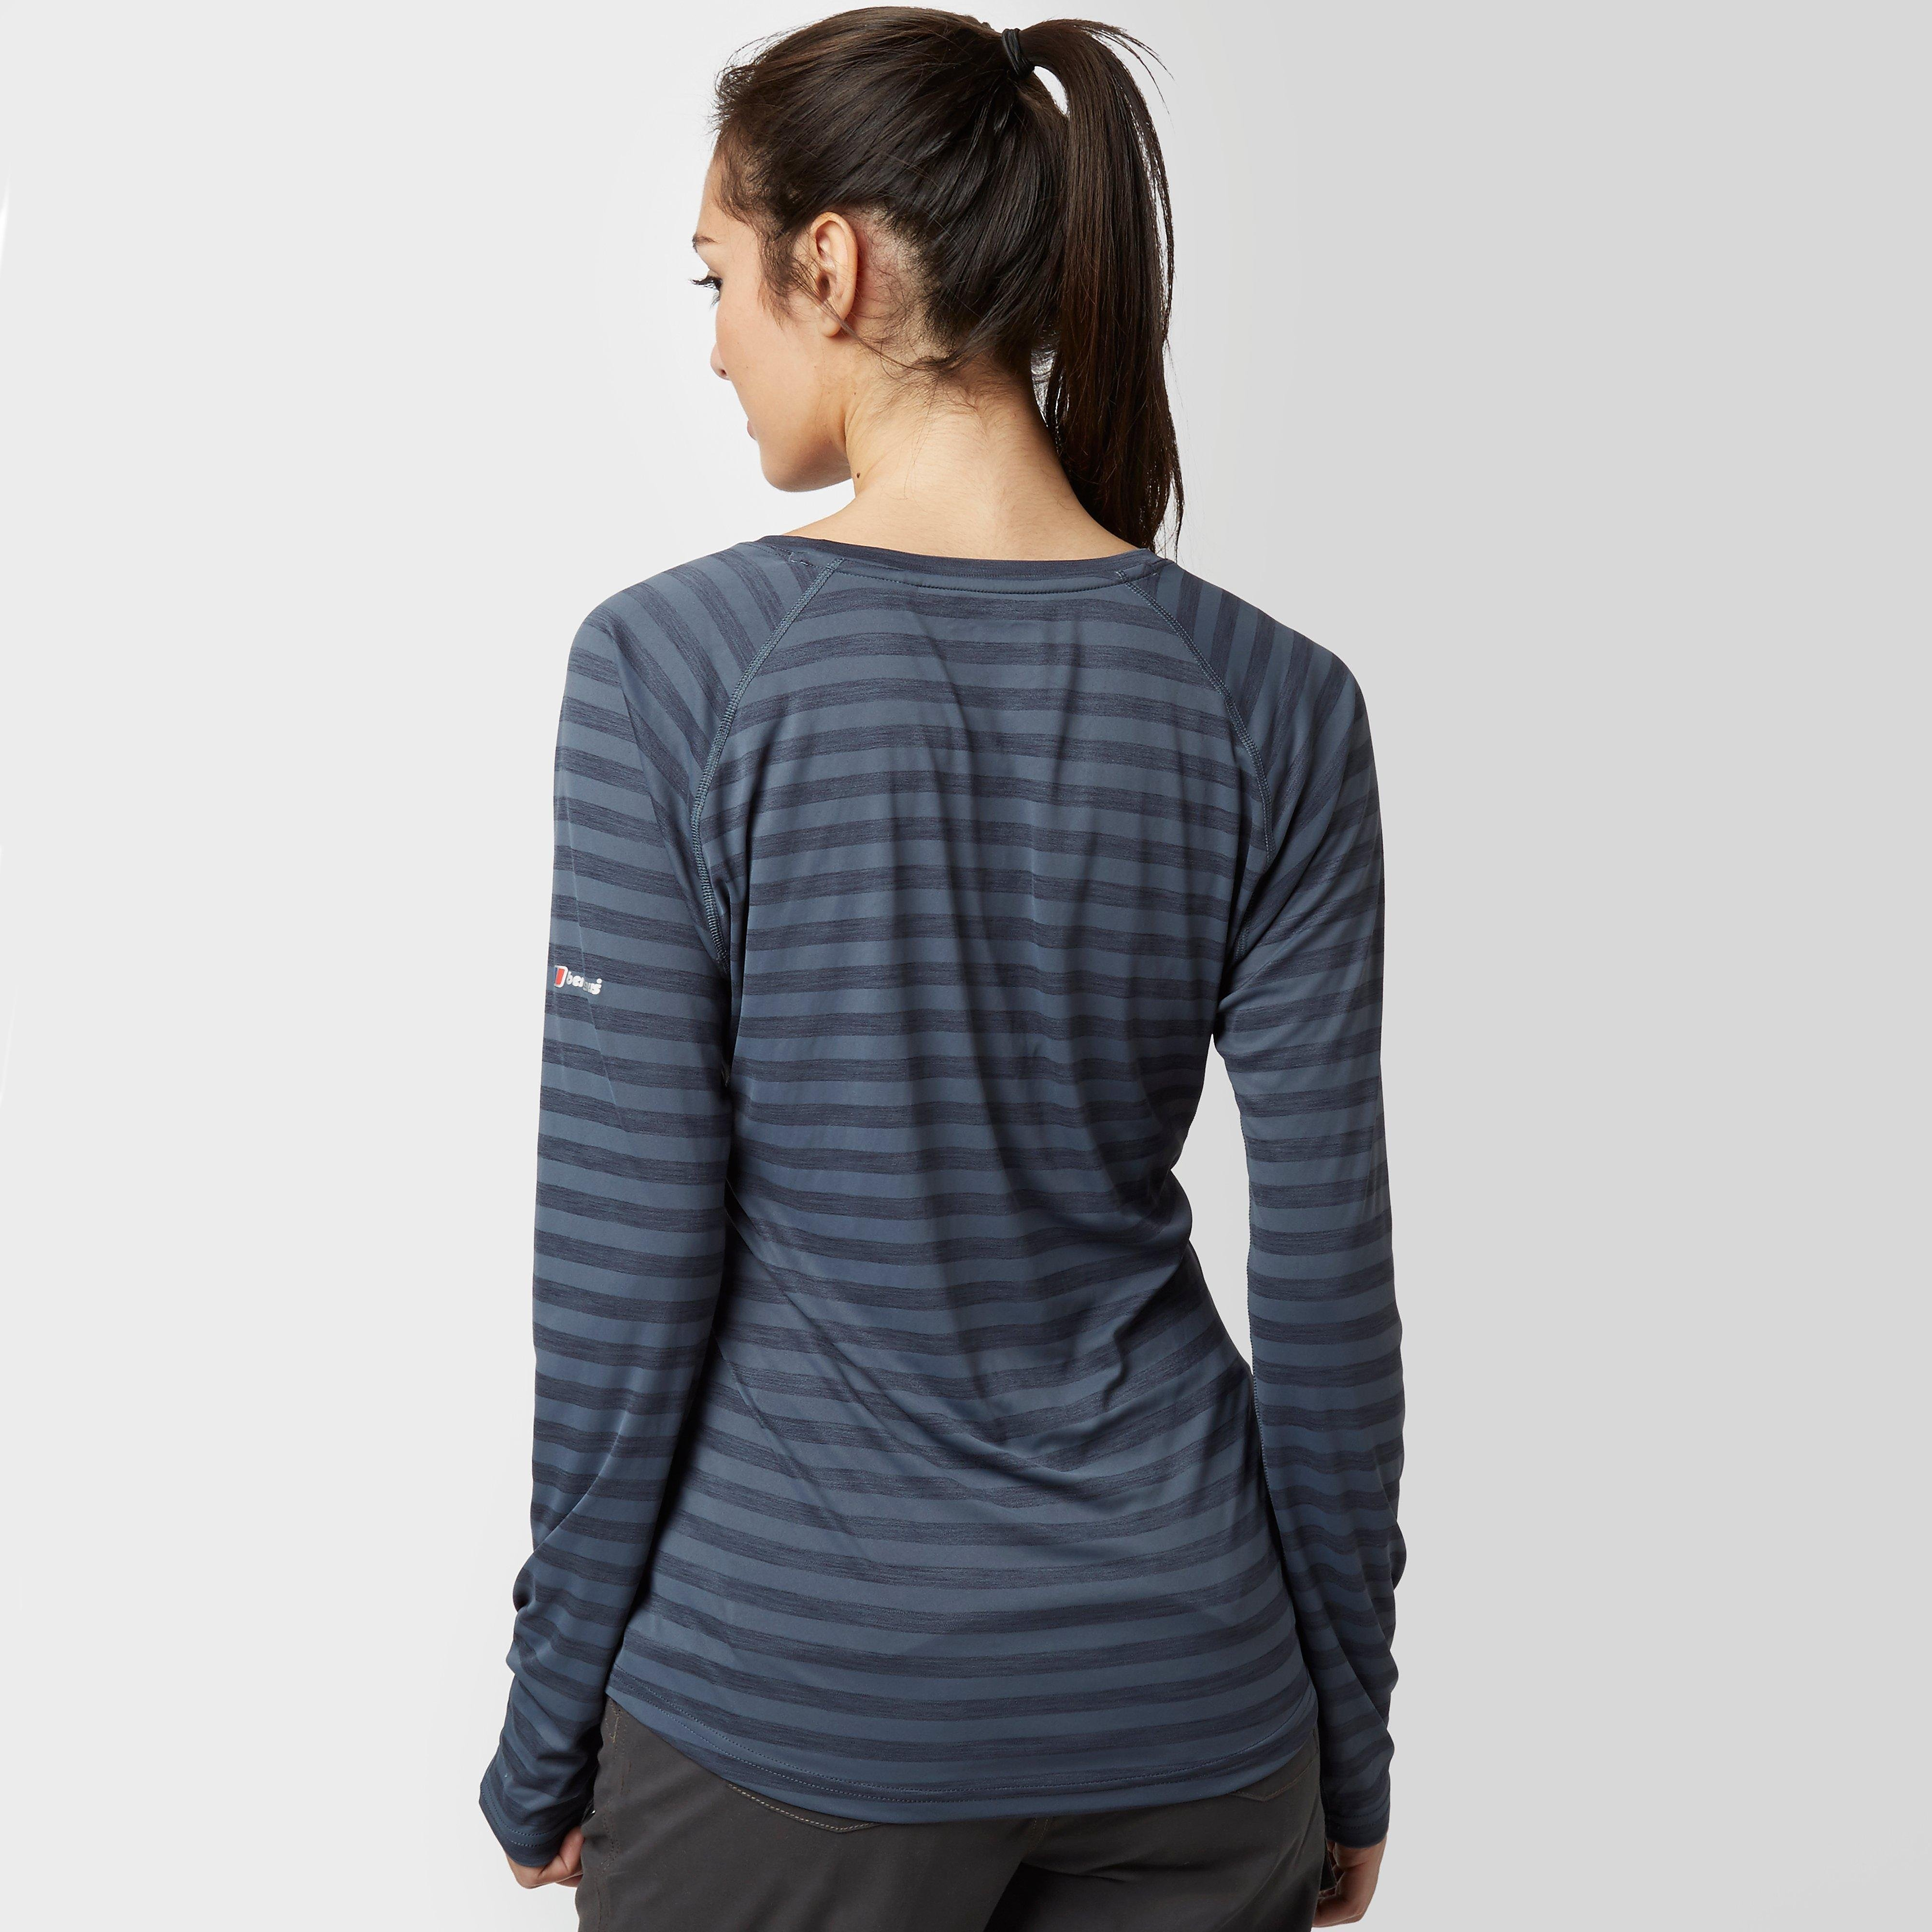 Berghaus Stripe Long Sleeve Crew Women's Baselayer